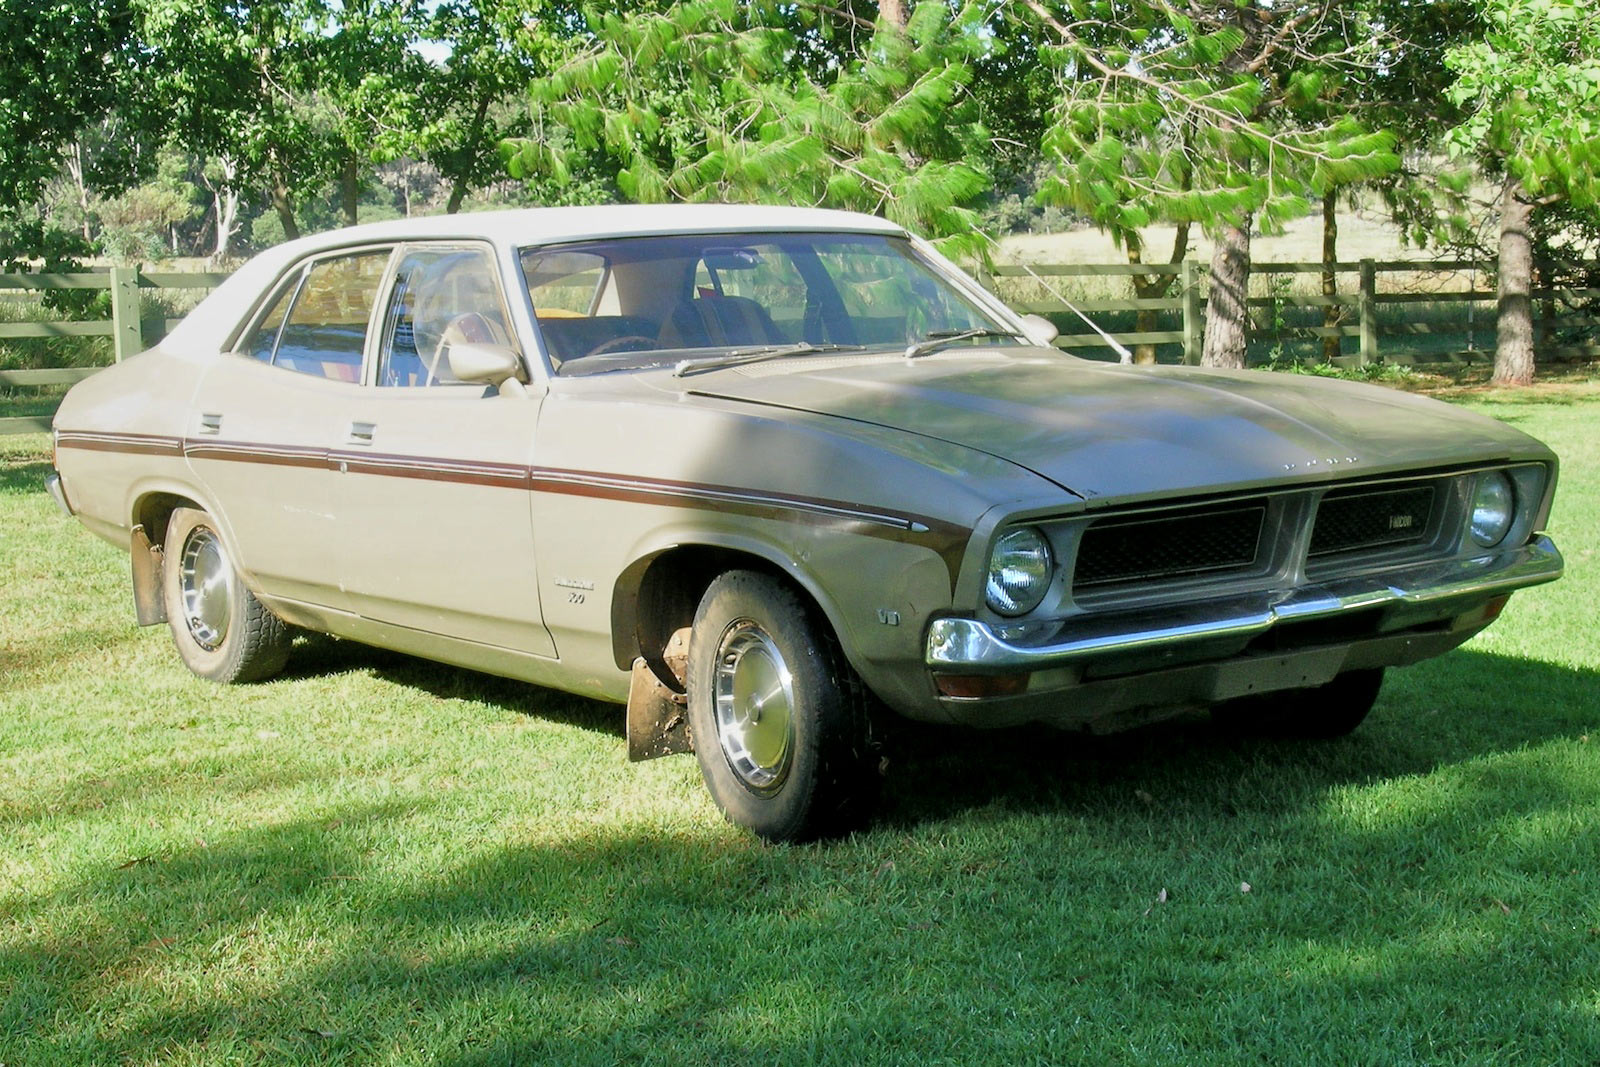 Ford falcon 1976 photo - 6